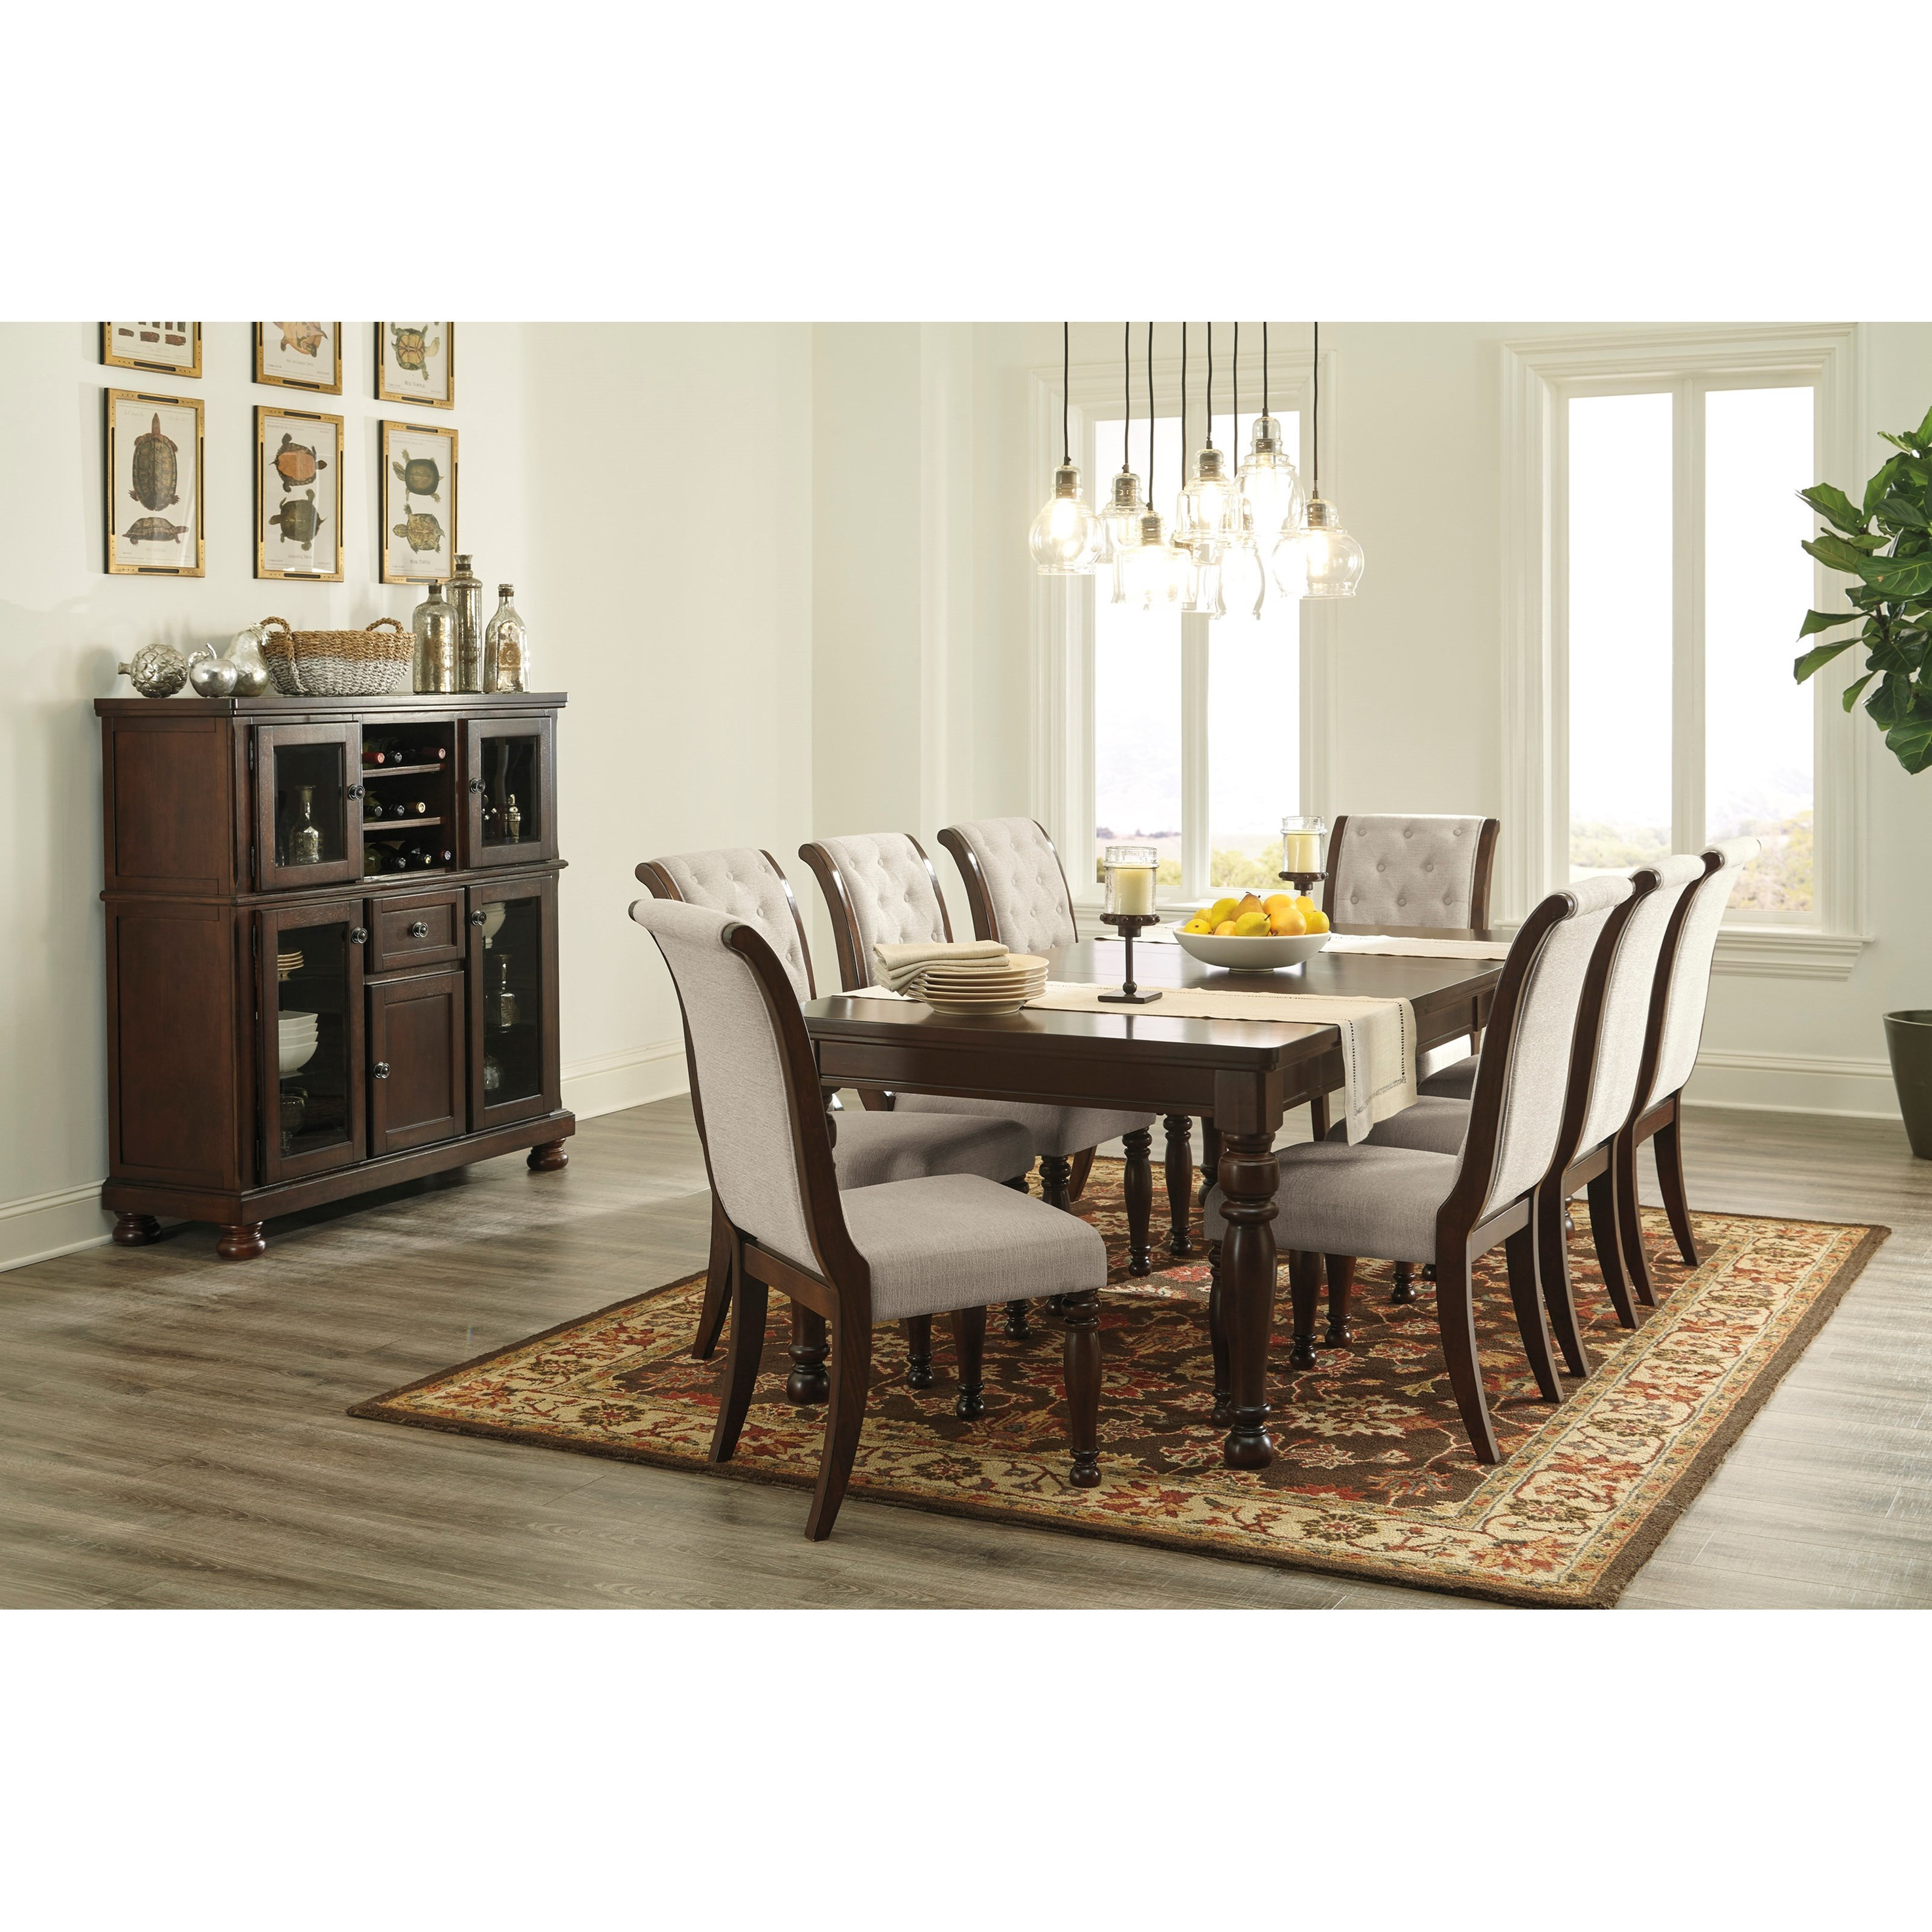 Porter Formal Dining Room Group by Ashley Furniture at Northeast Factory Direct